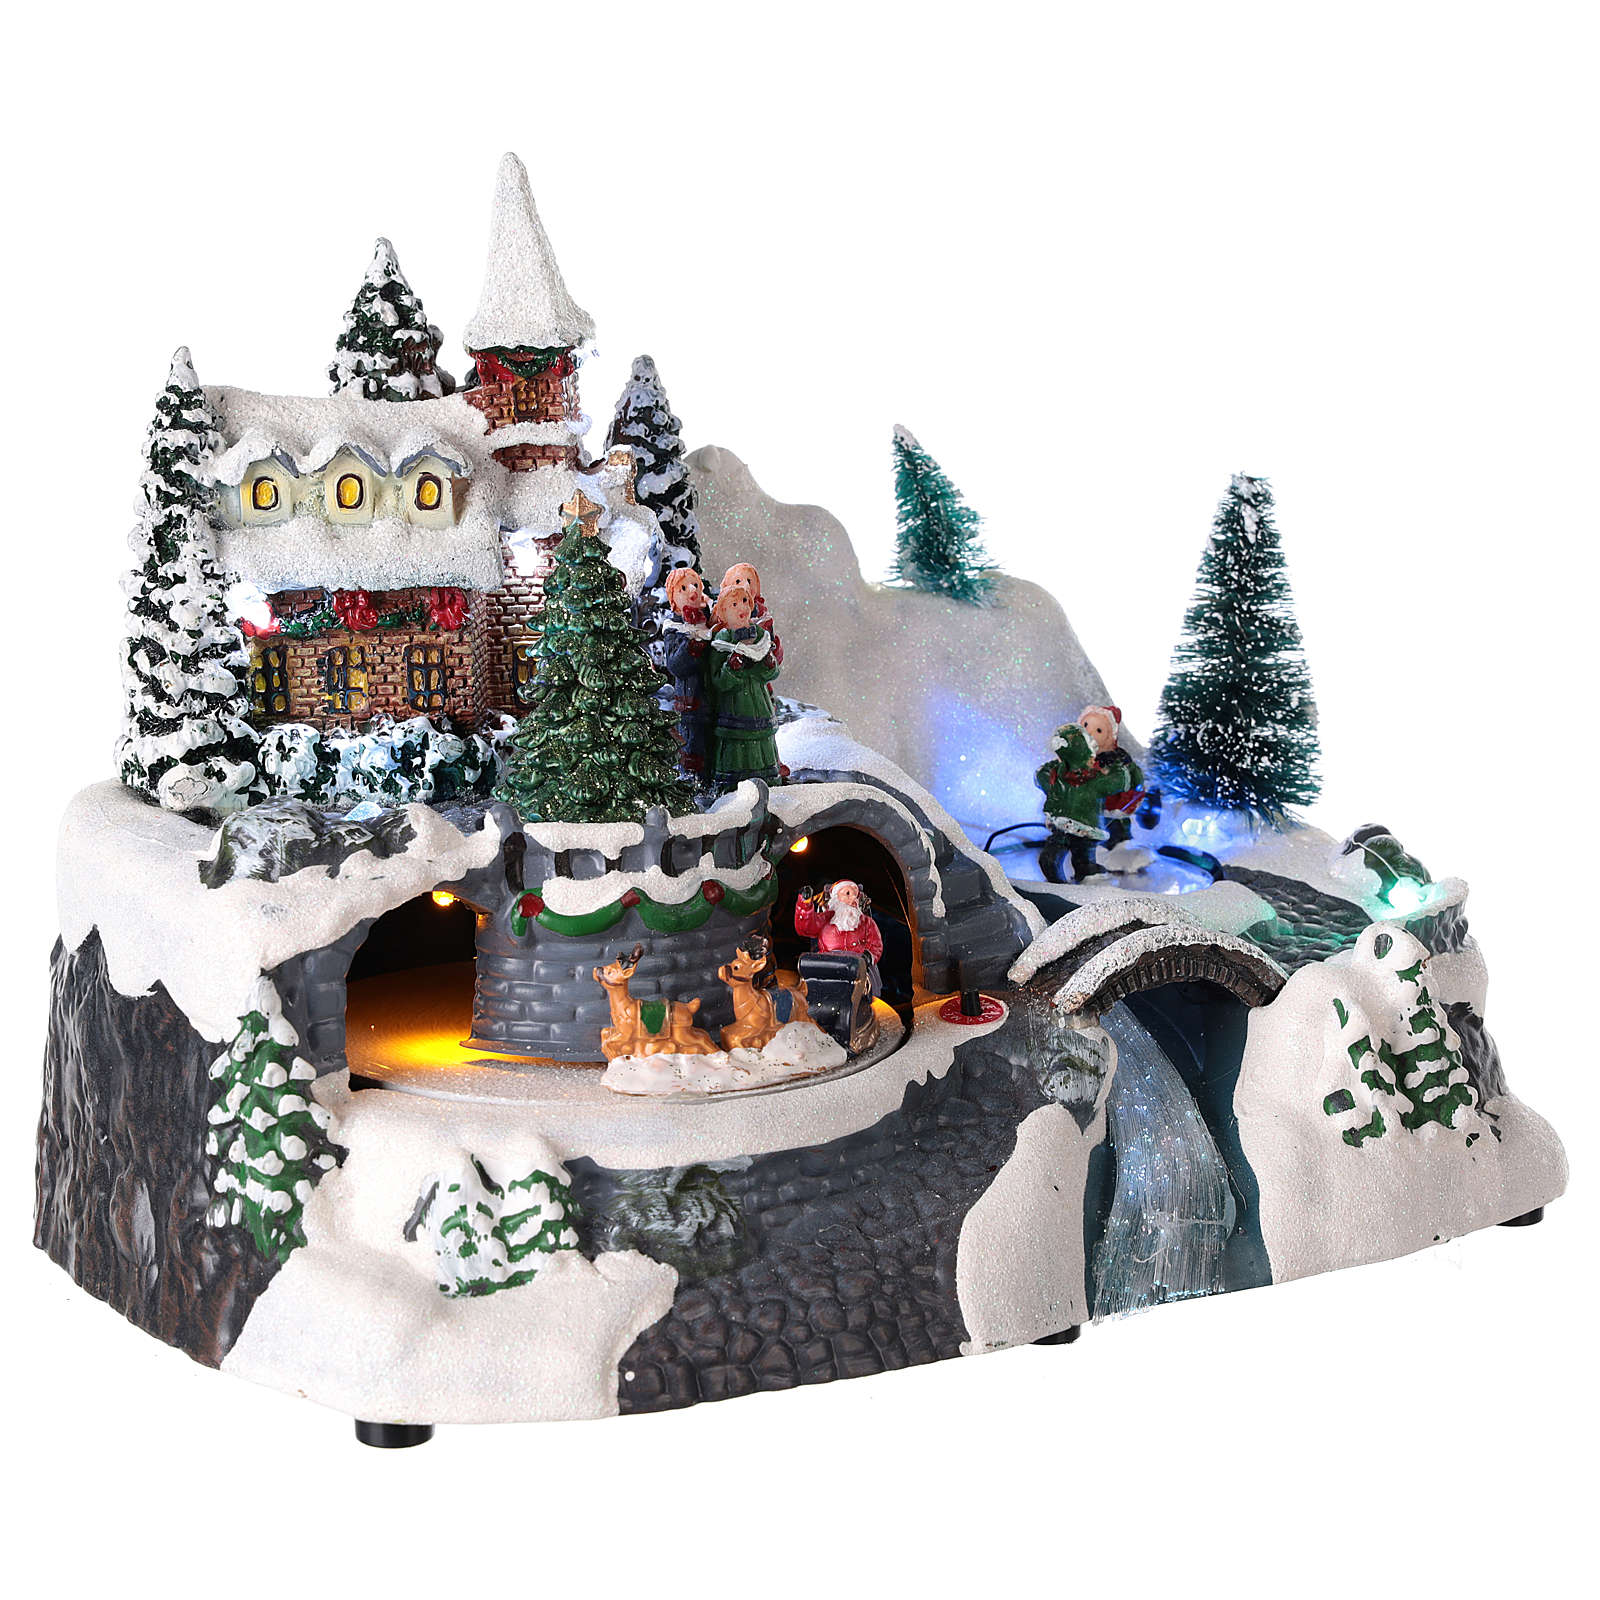 Lighted Christmas village with church and water fall 20x25x15 cm 3